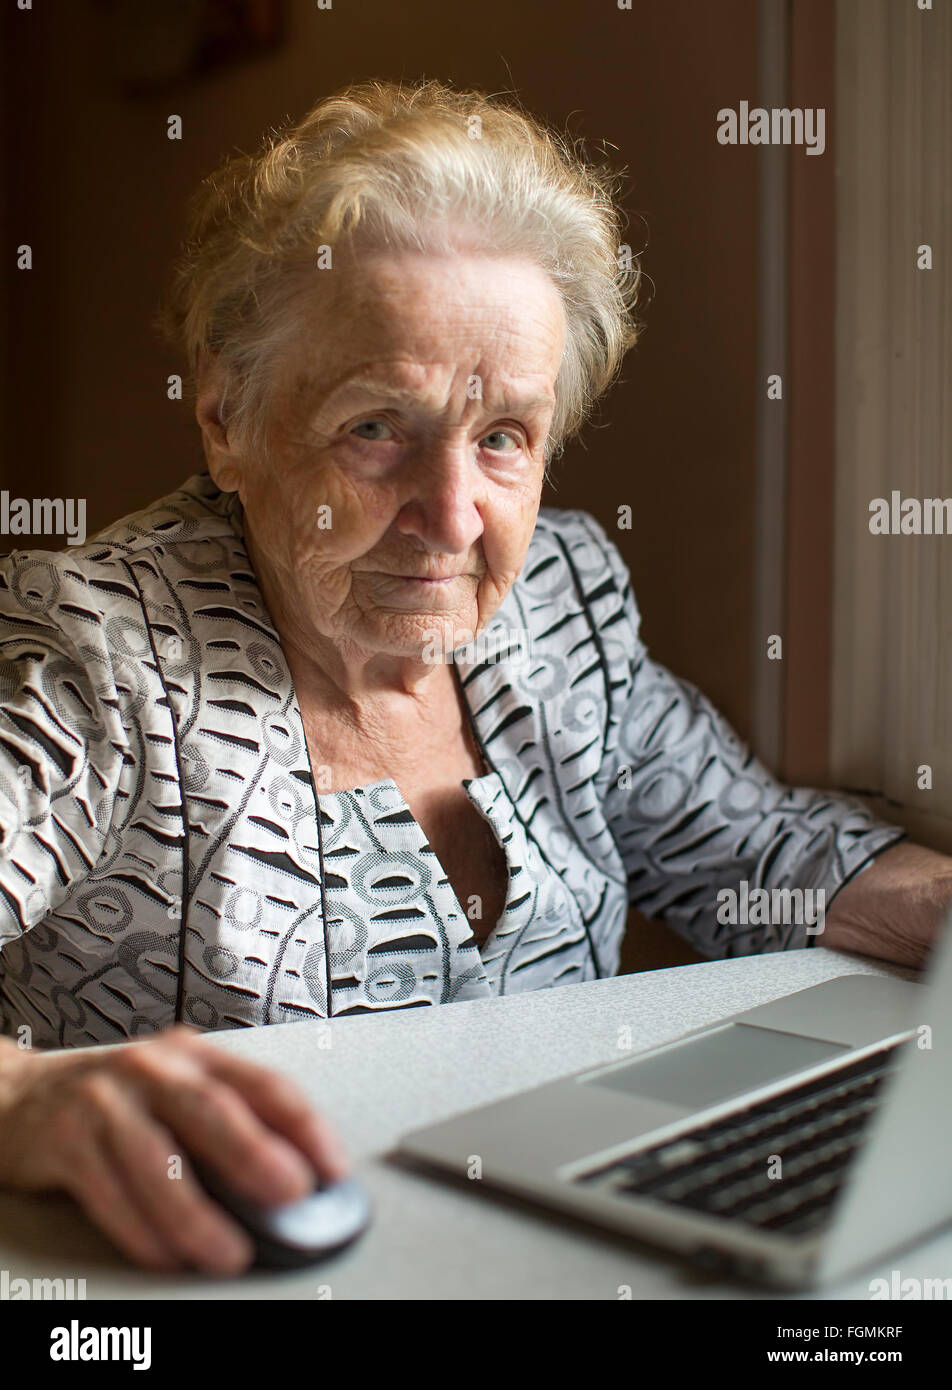 An elderly woman sitting with laptop. - Stock Image